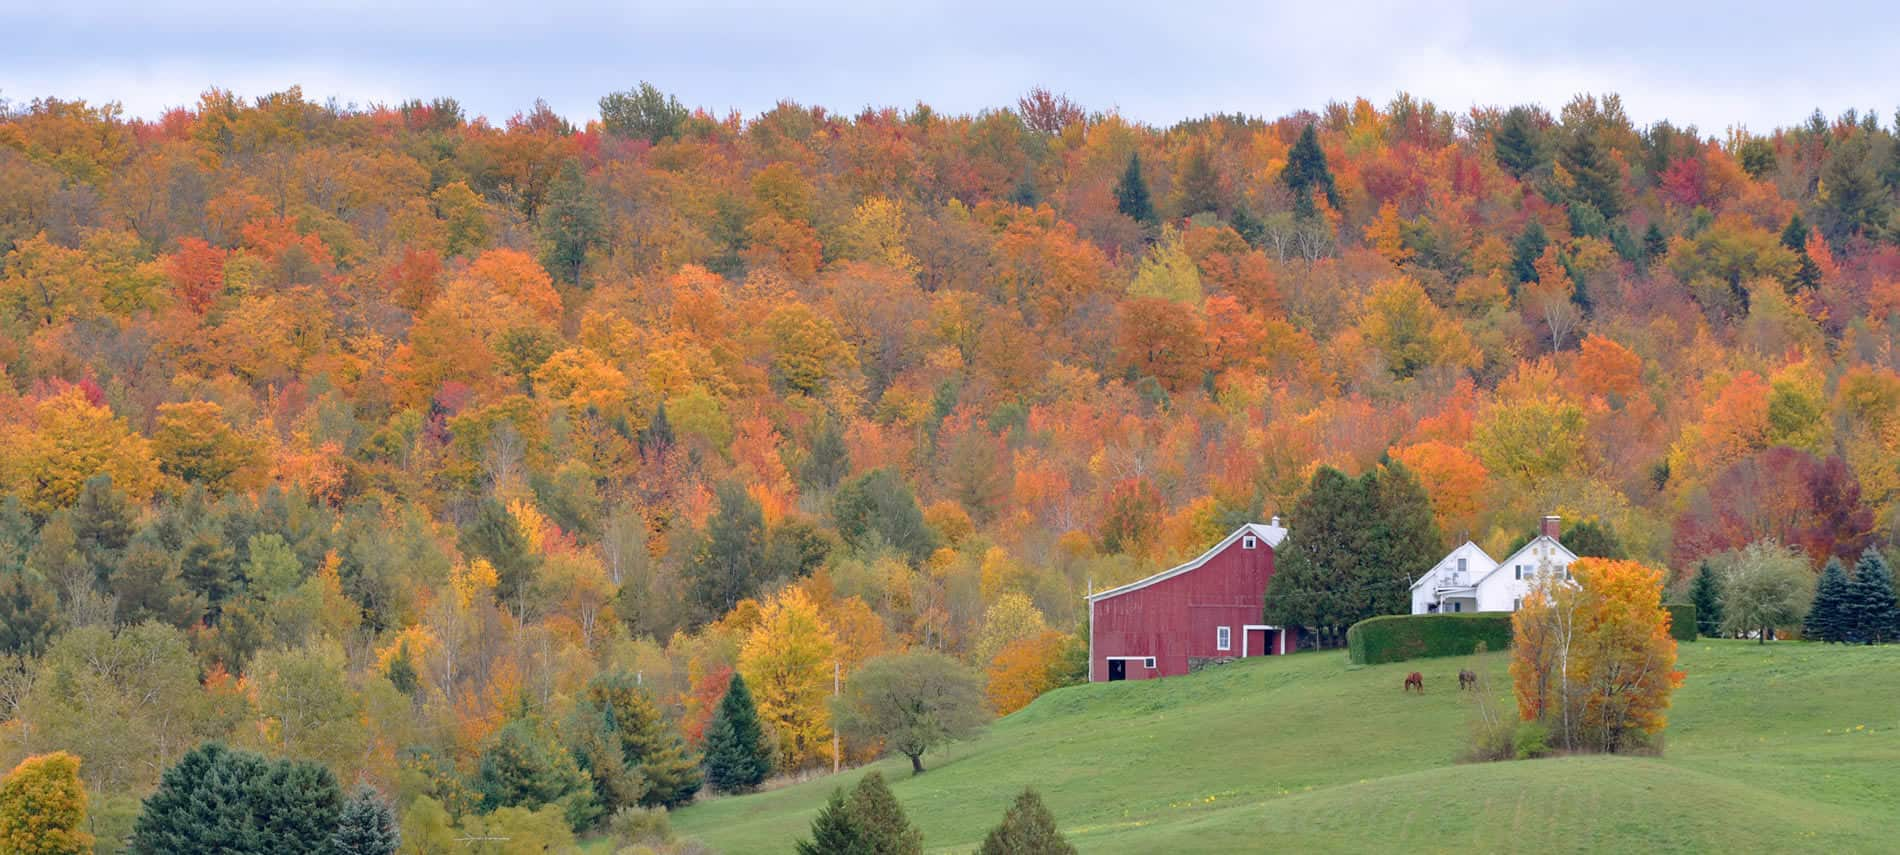 Stunning view of green grassy lawn, evergreens, red barn, and hundreds of trees with fall foliage in the background